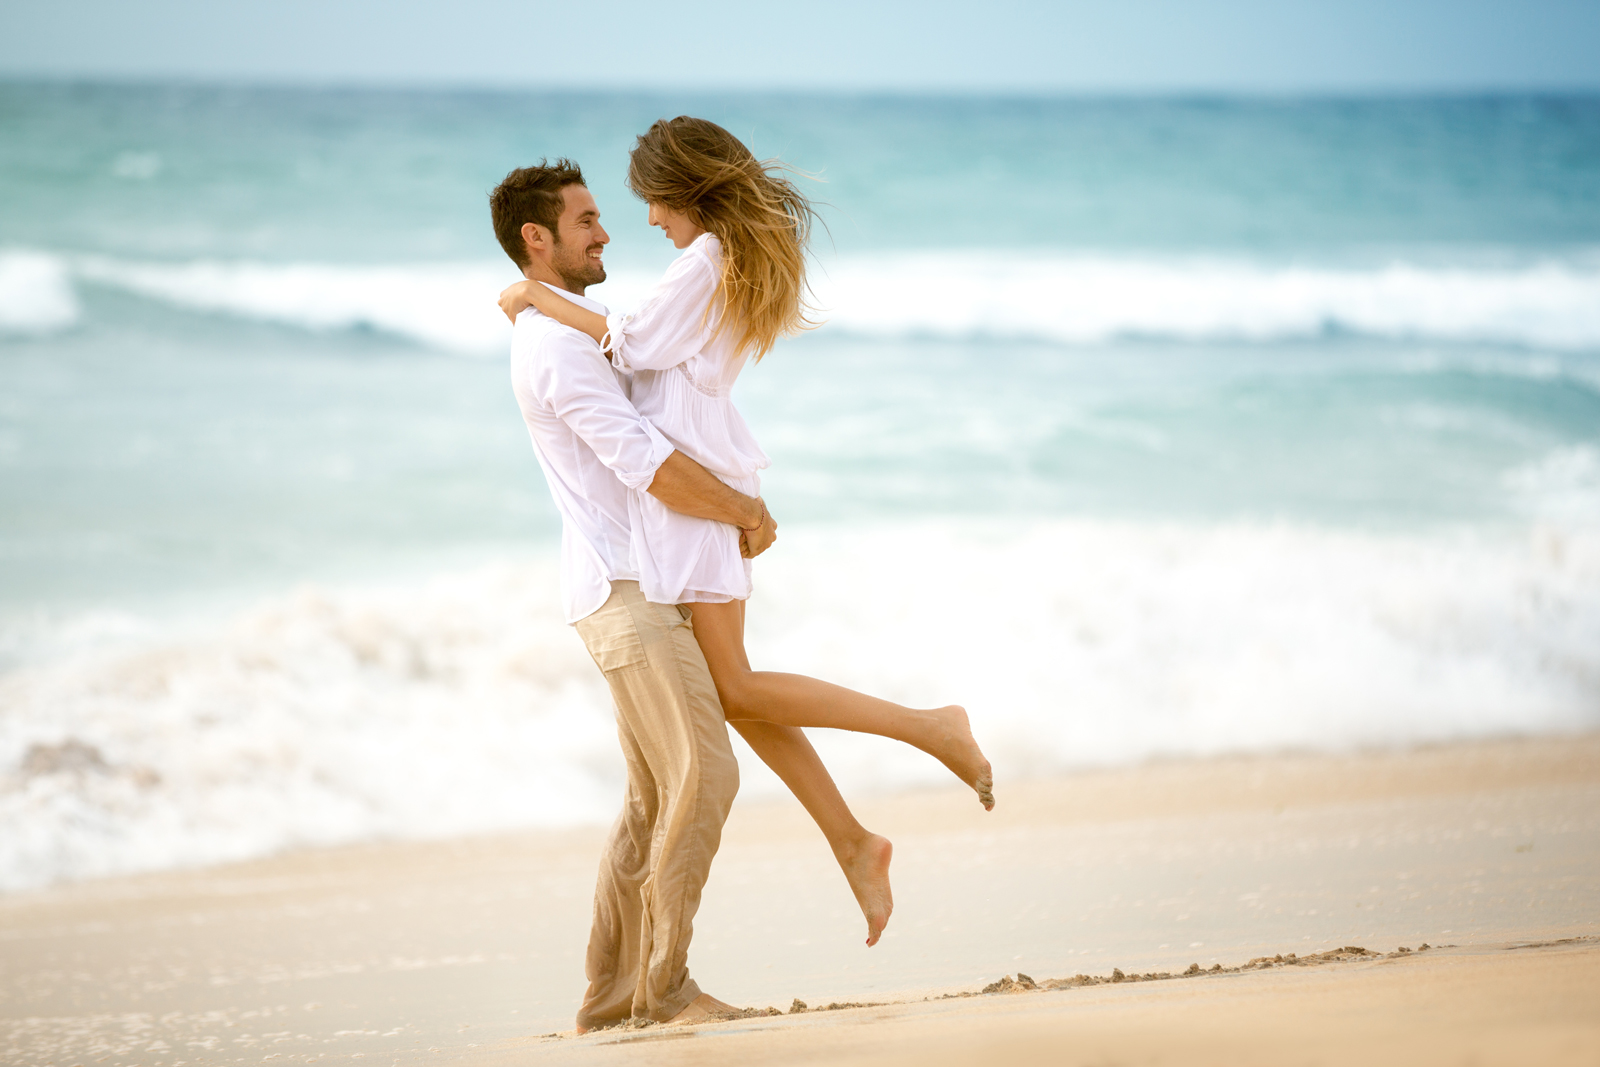 Top Romantic Date Ideas for Your Vacation on Oahu